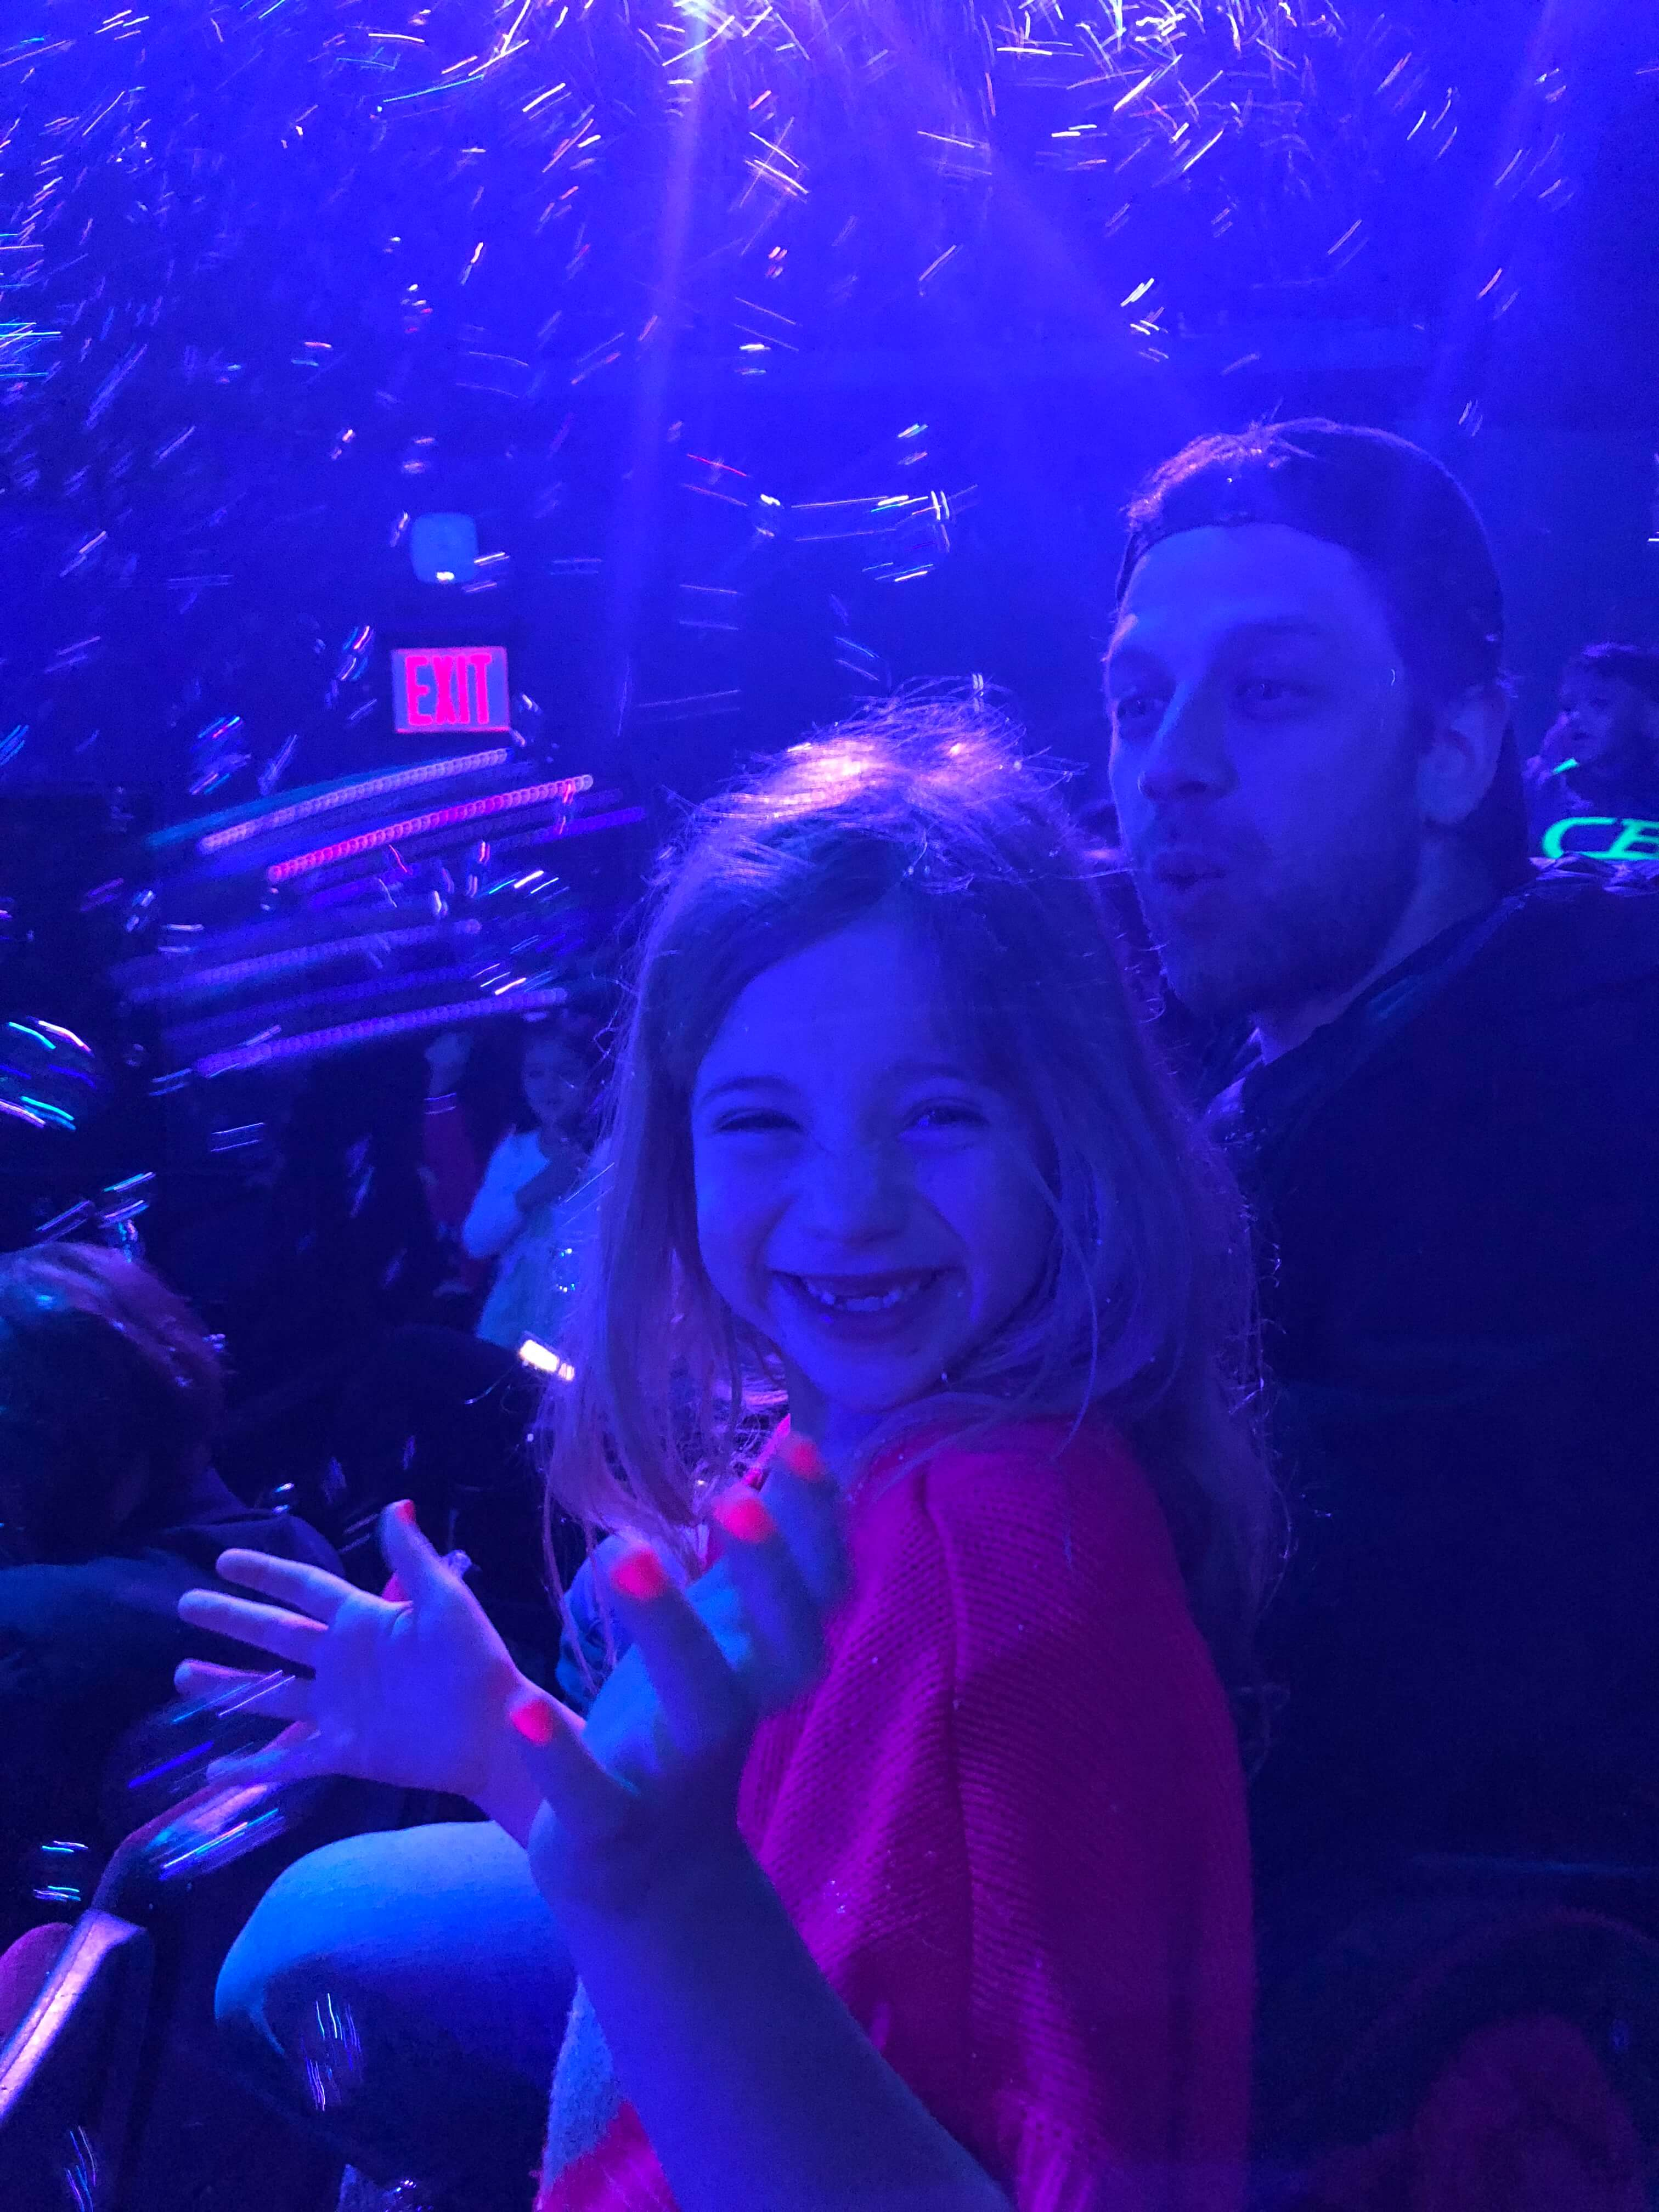 Gazillion Bubble Show in nyc for kids